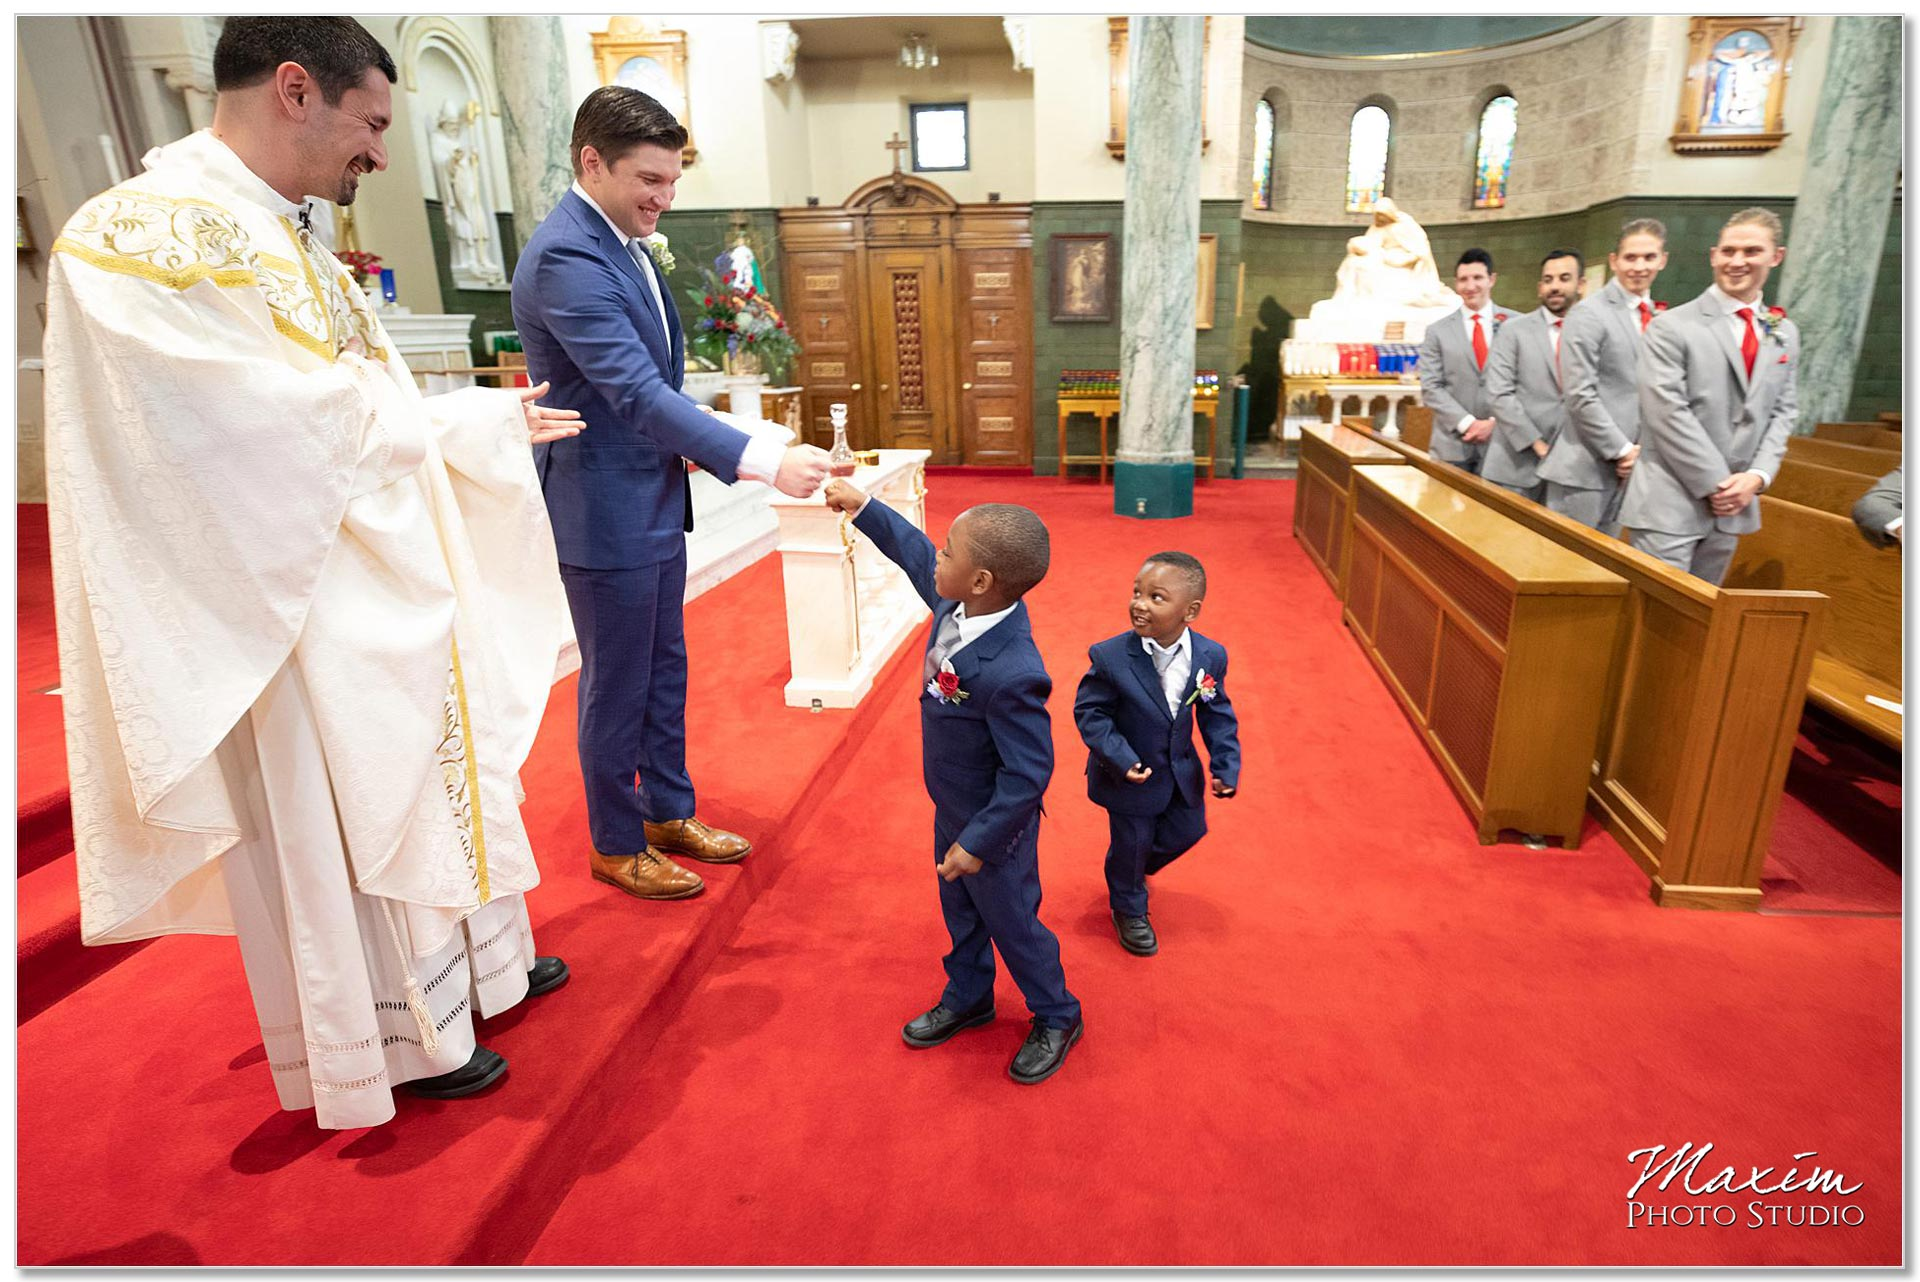 Fist pump from the ring bearers during wedding ceremony